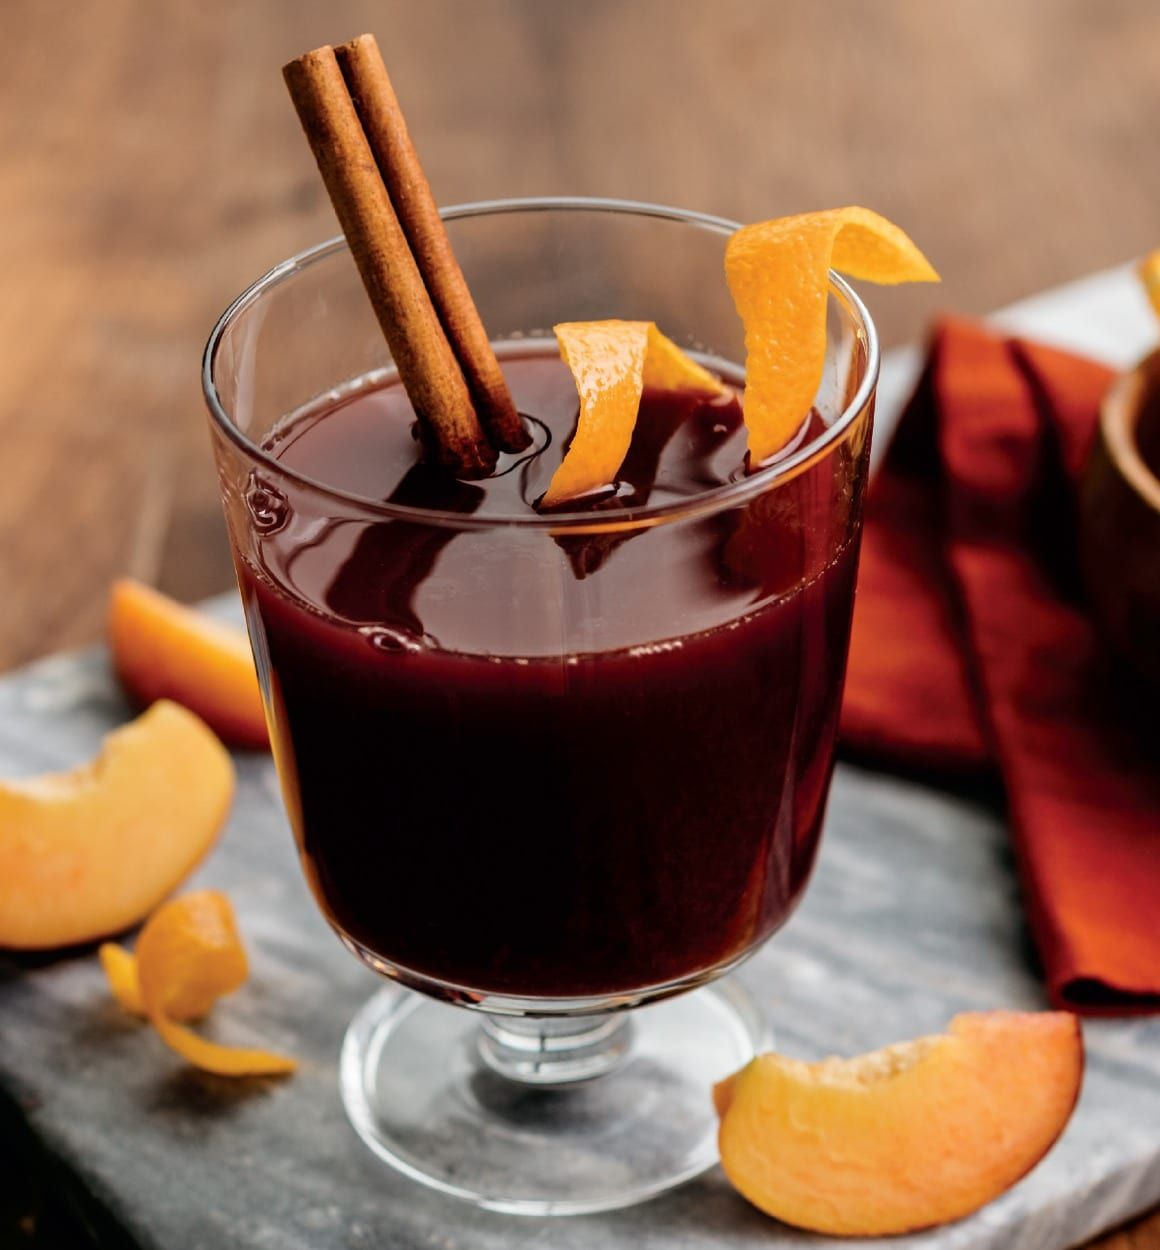 Traditional Mulled Wine Recipe Ninja Ninja Foodi Cold Hot Blender Hb100 Wine Recipes Recipes Mulled Wine Recipe